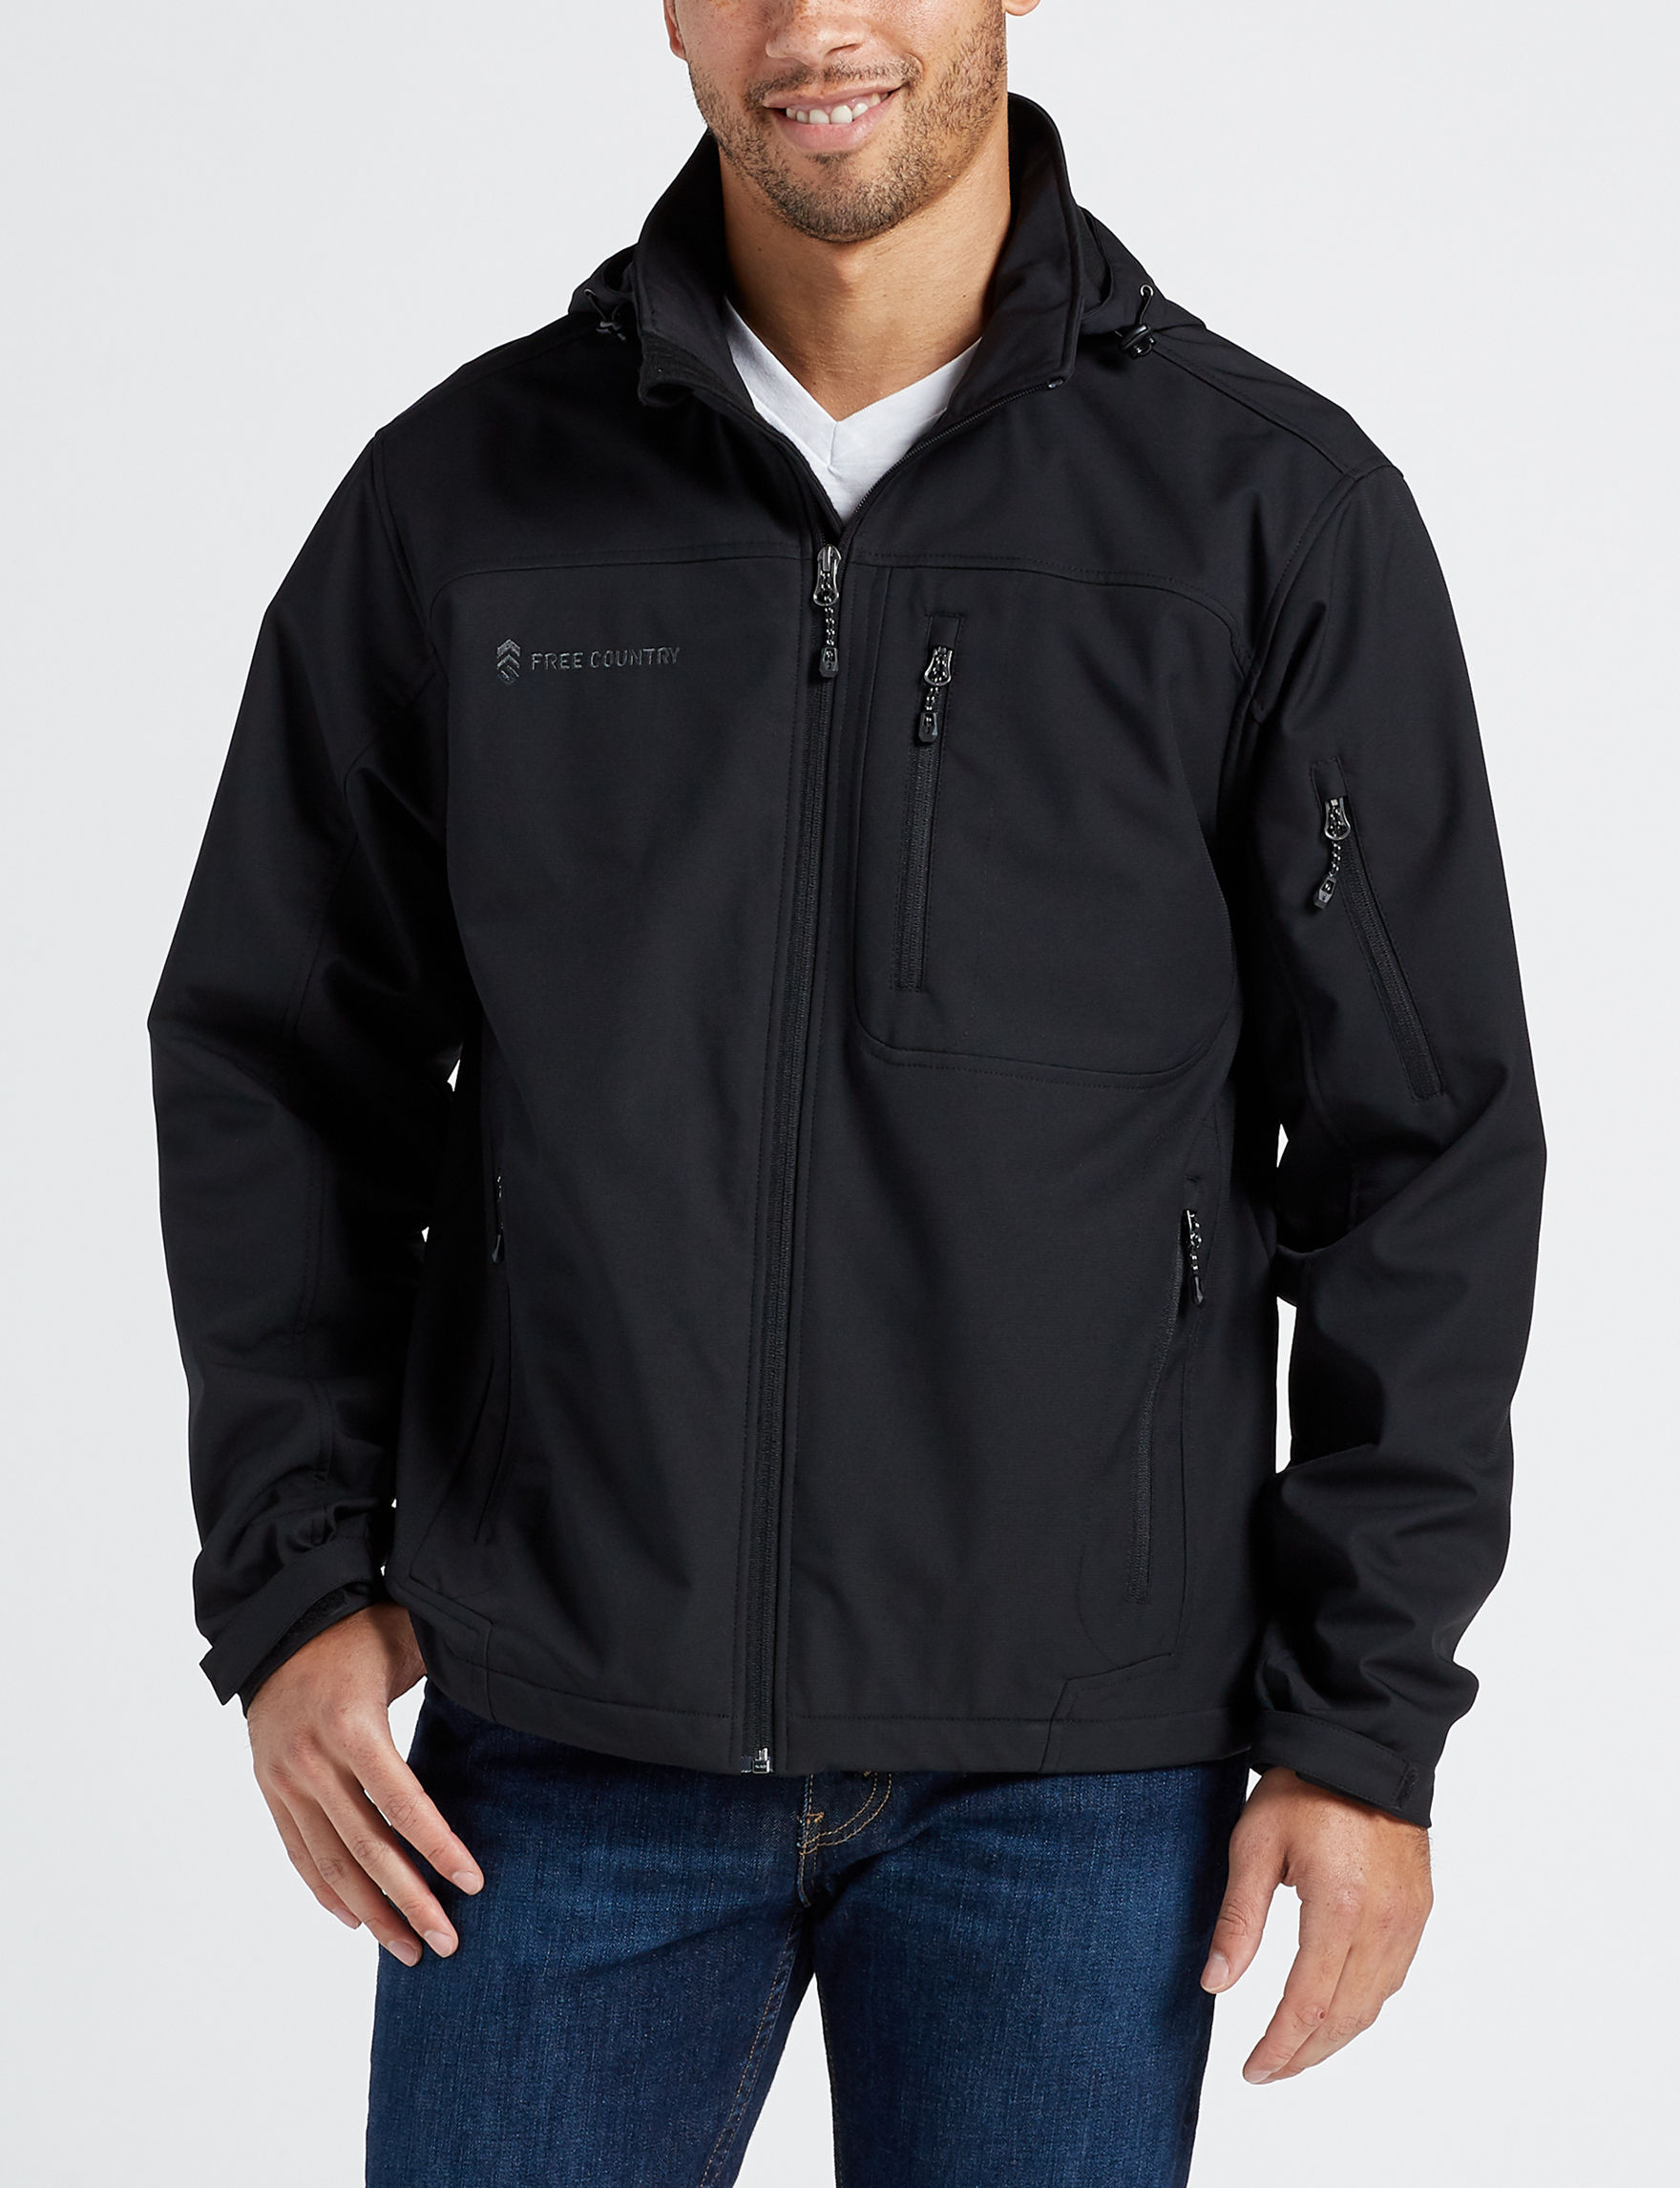 Free Country Black Fleece & Soft Shell Jackets